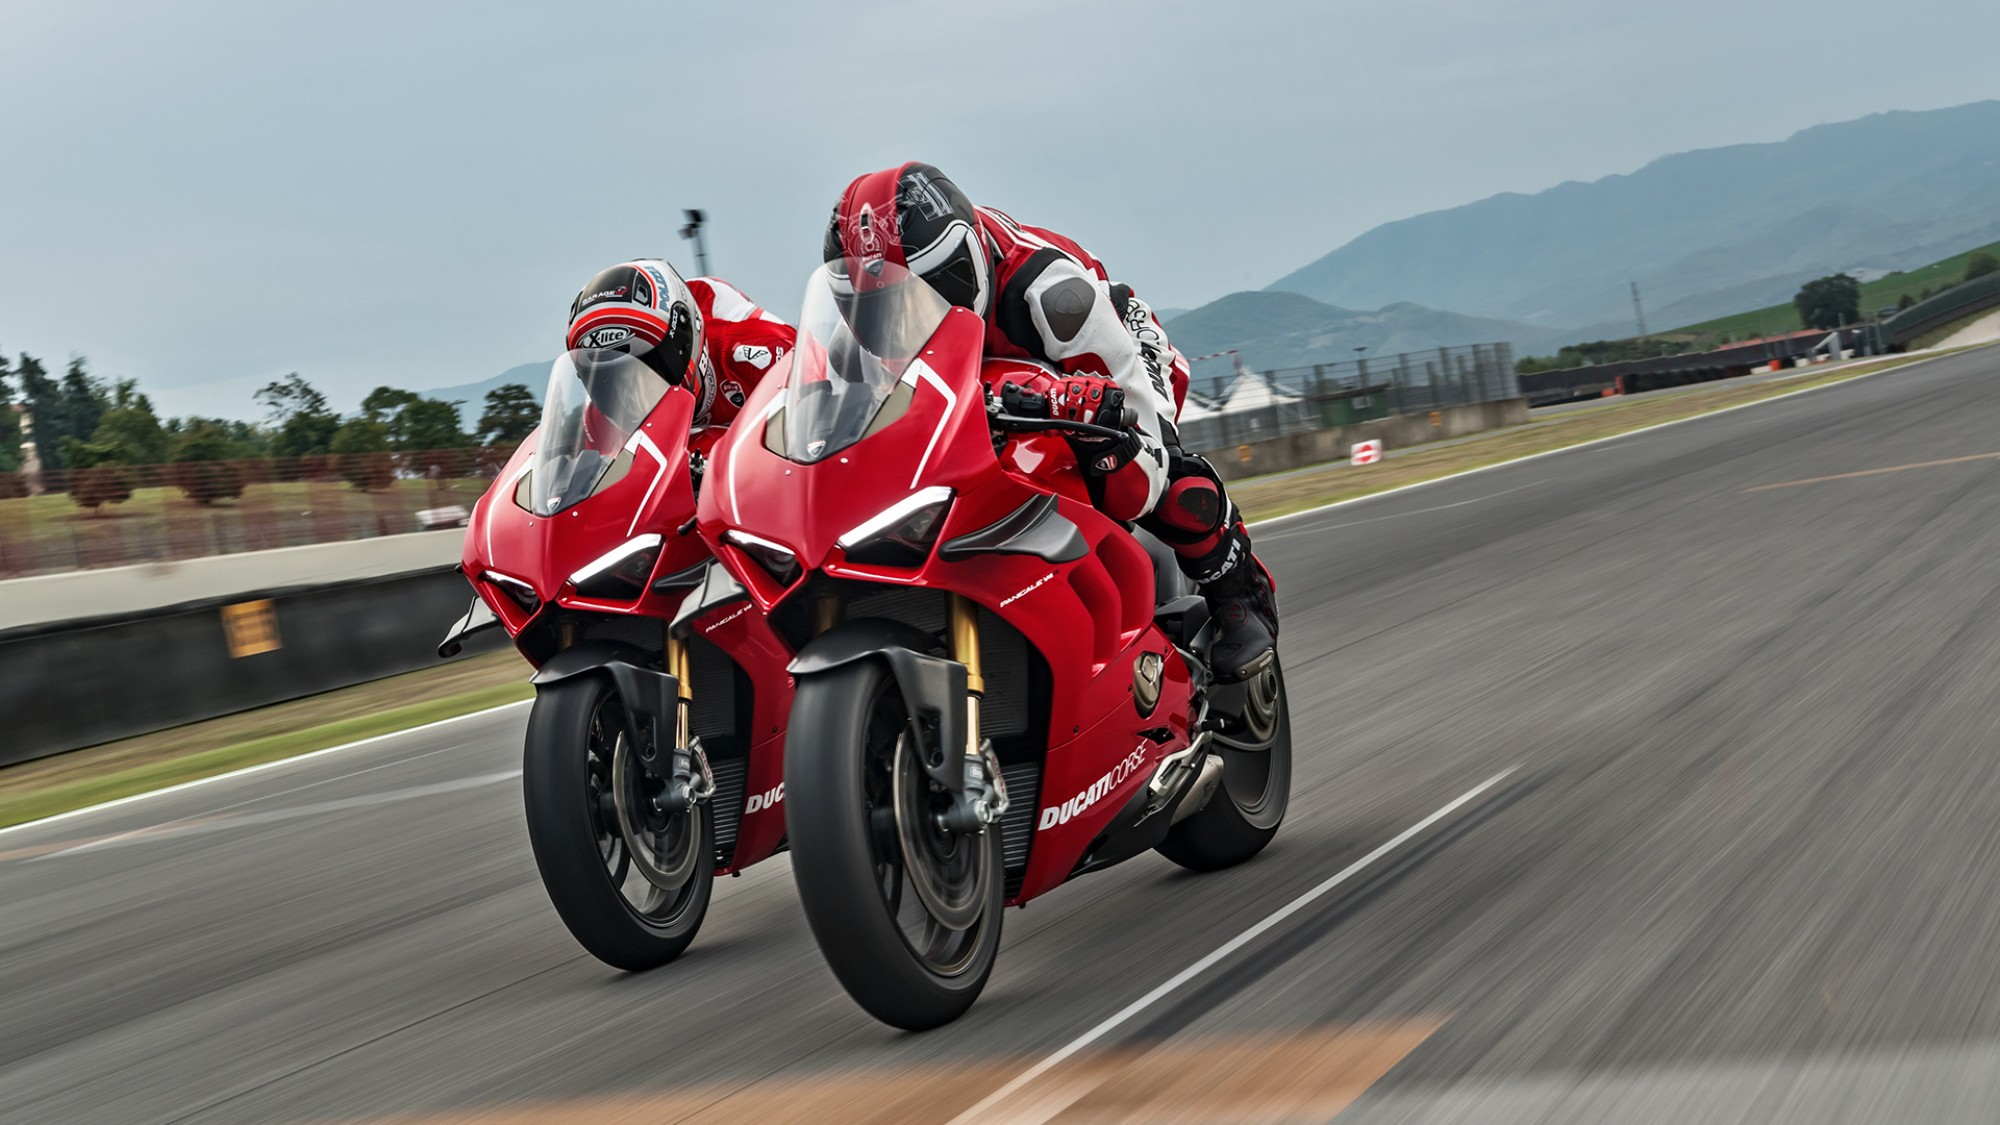 15_ducati-panigale-v4-r-action_uc69252_h